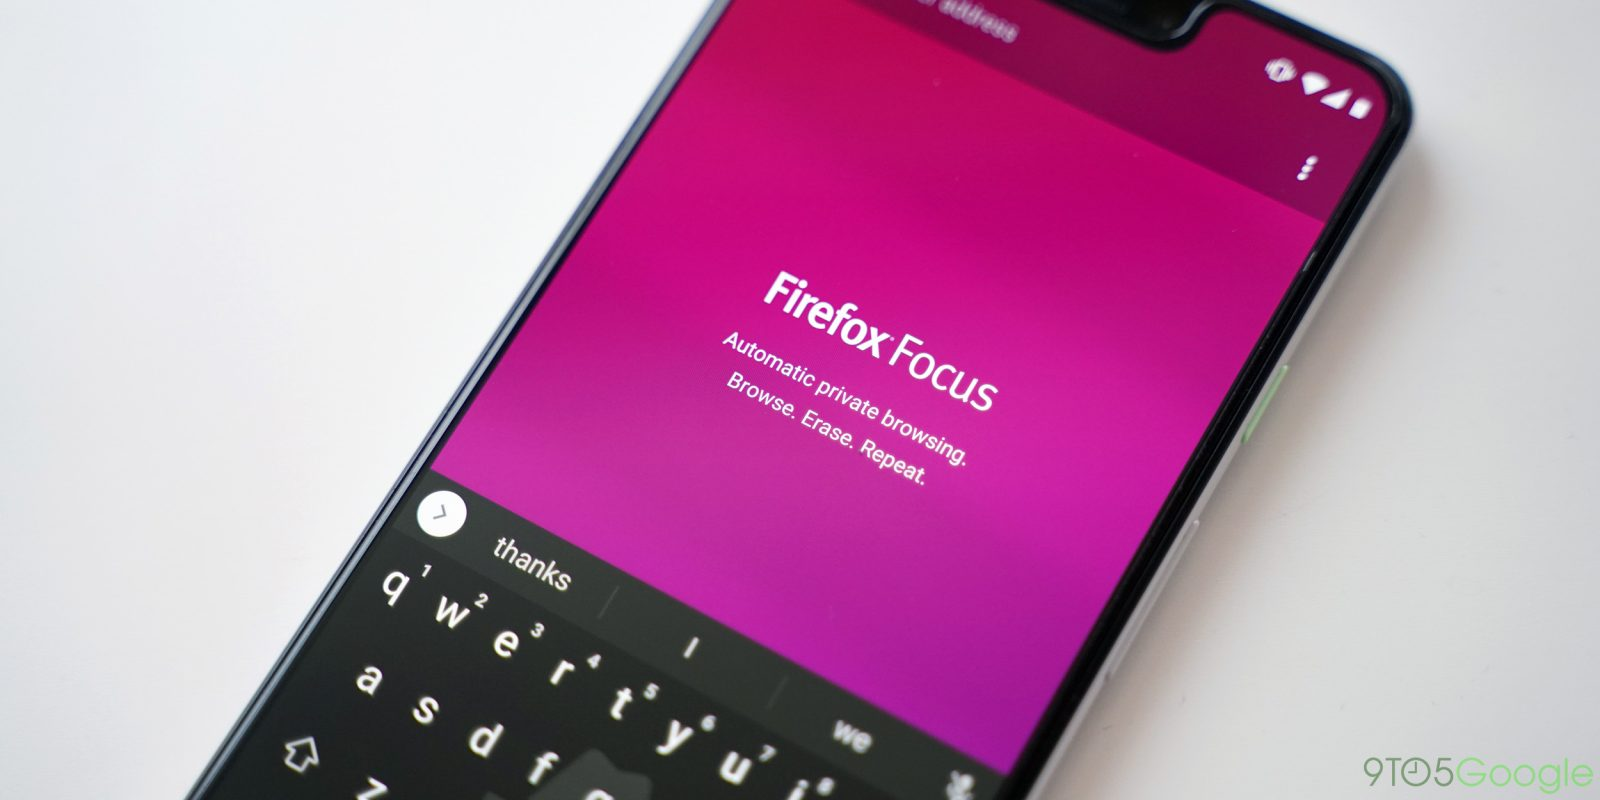 Firefox Focus adds Google Safe Browsing on Android - 9to5Google